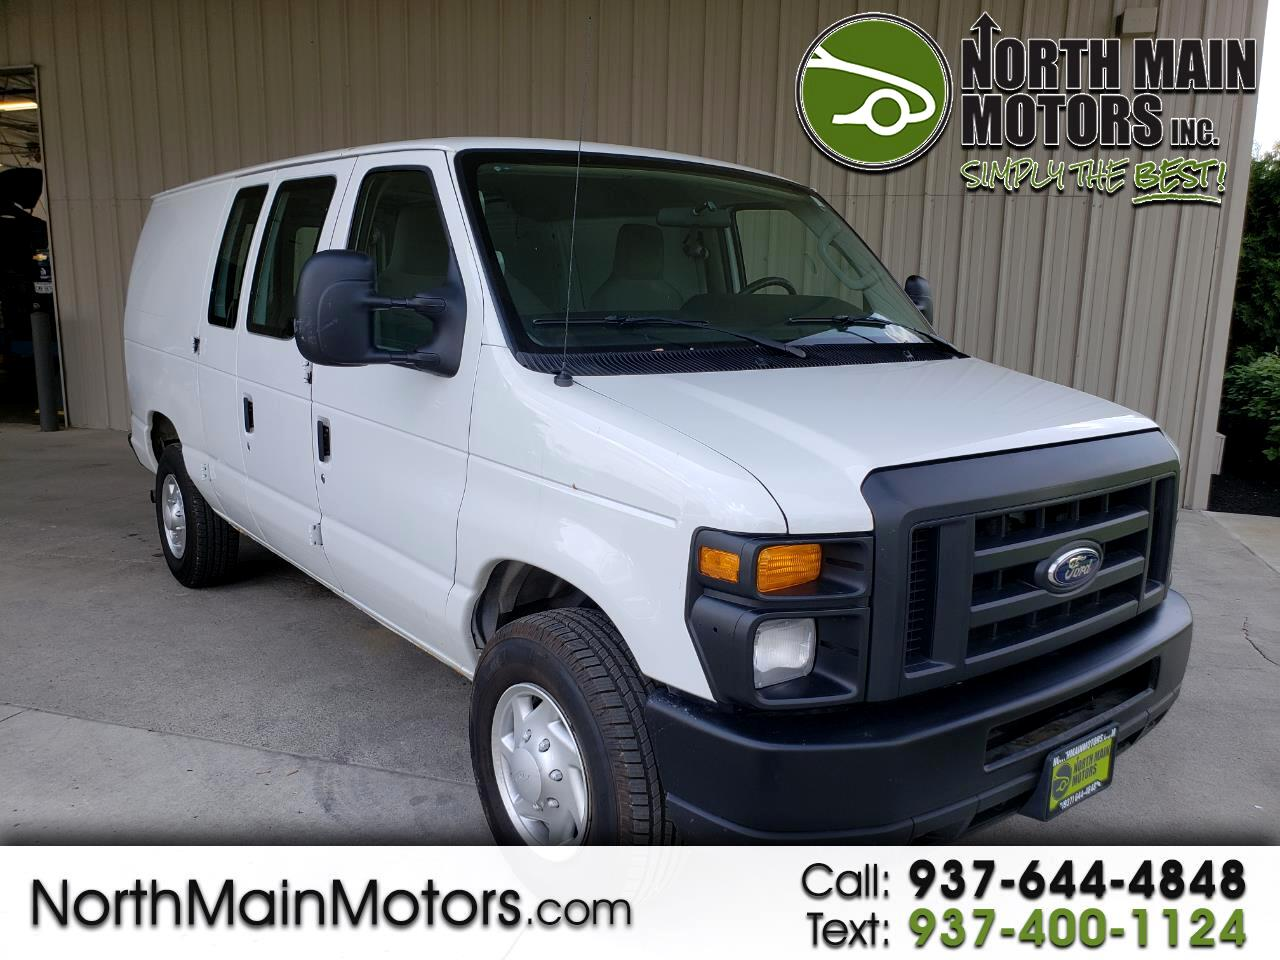 2013 Ford Econoline Cargo Van E-350 Super Duty Recreational